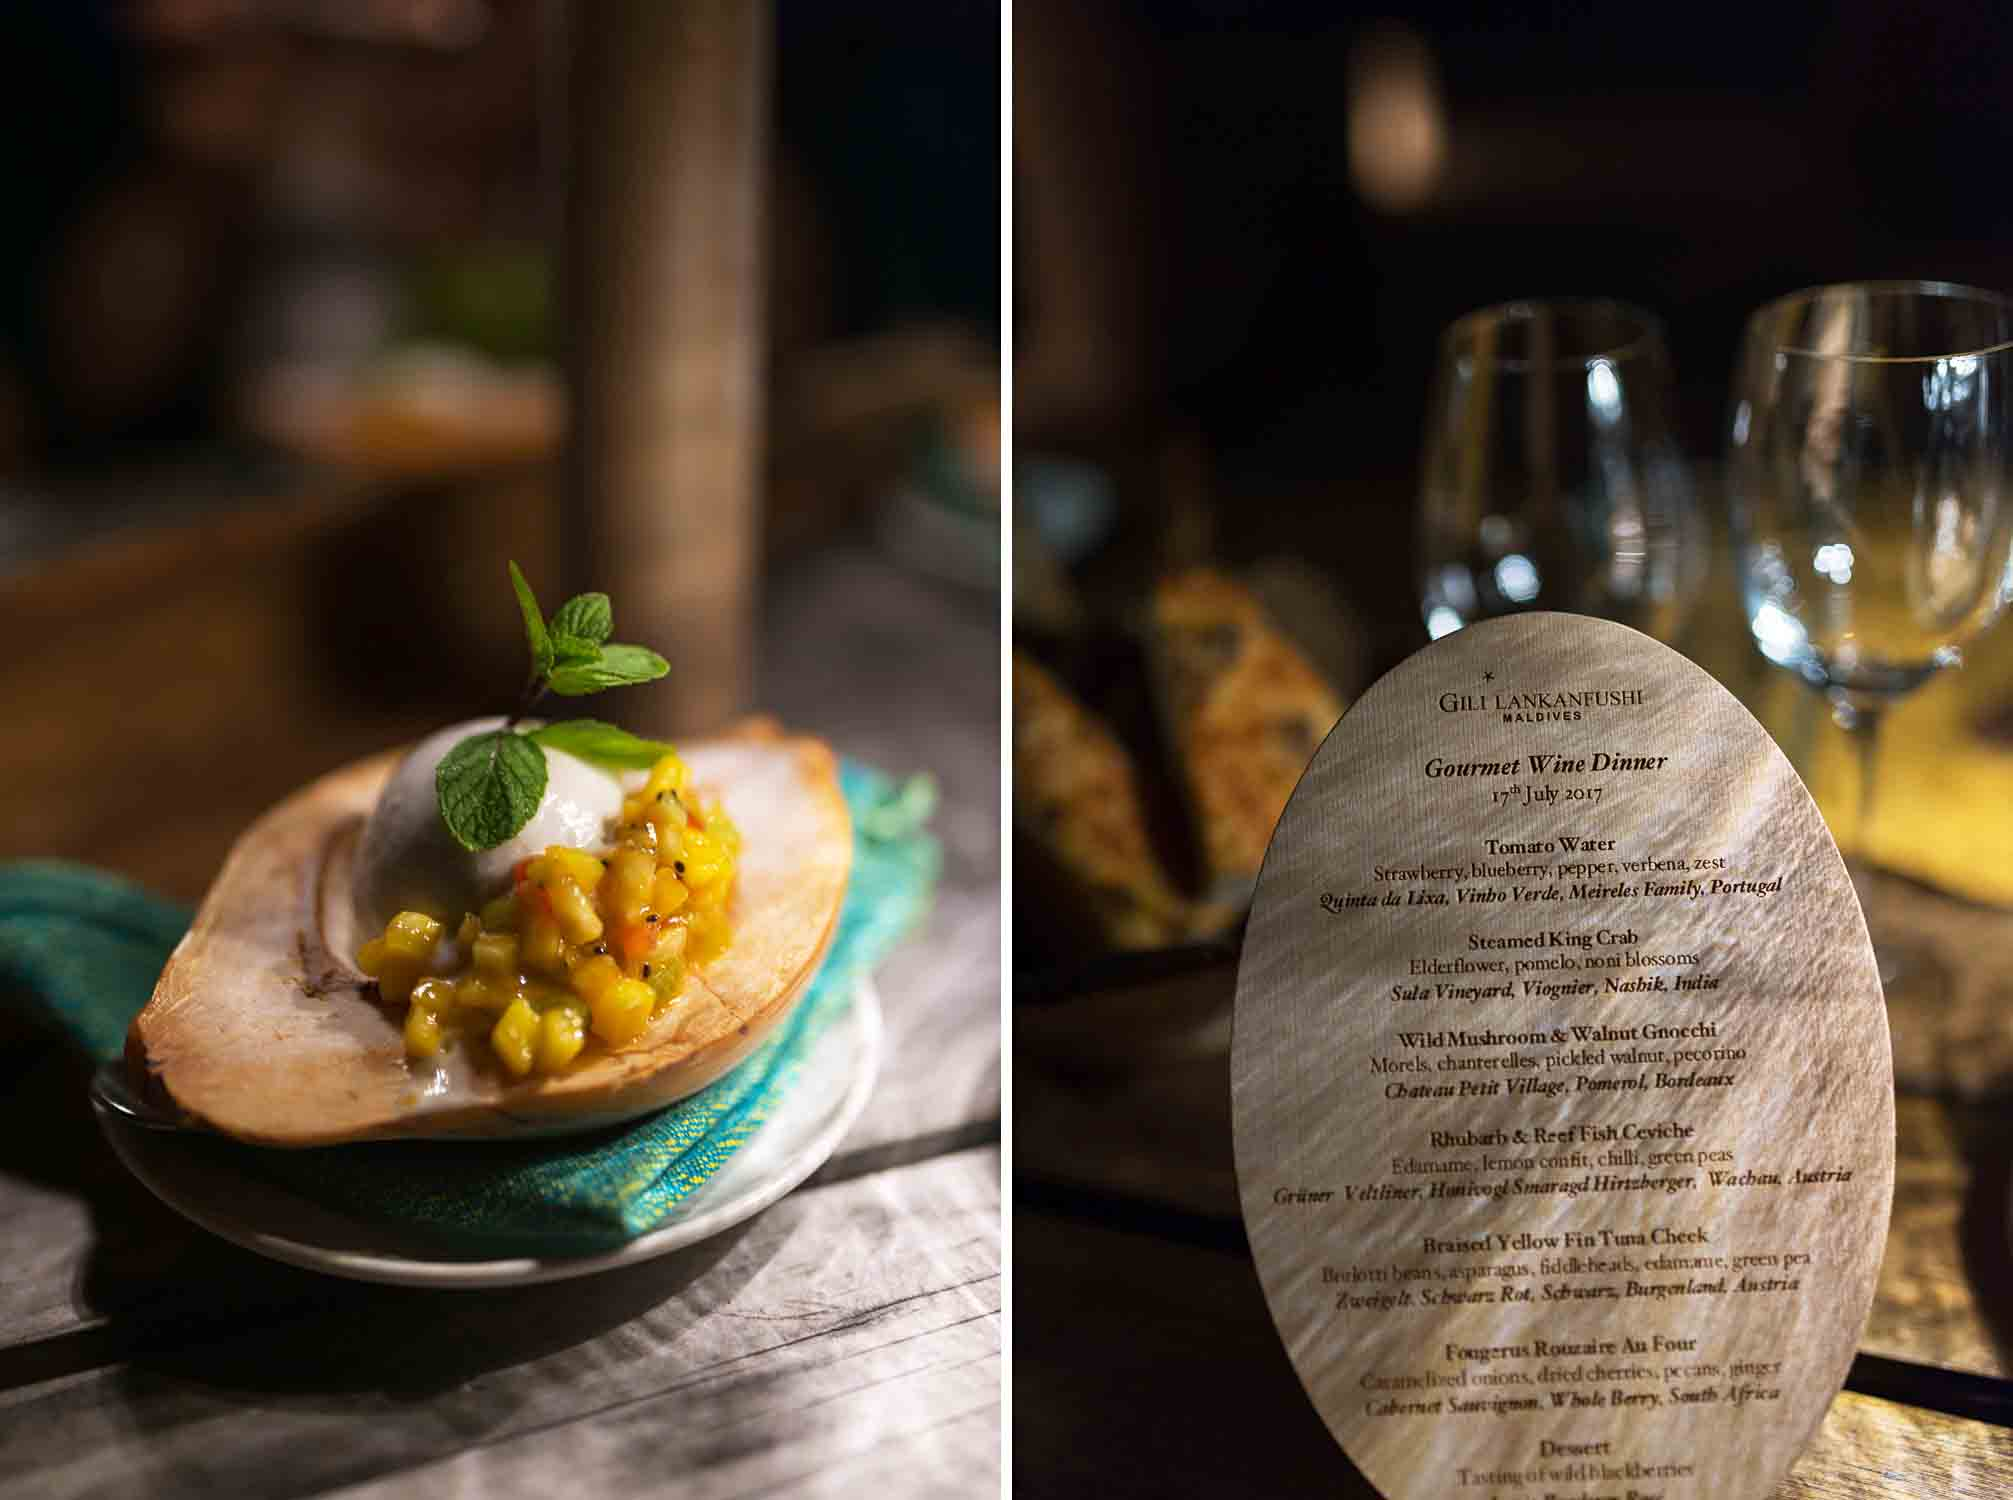 Private Dining Experience - 7 Reasons to Book at Holiday to Gili Lankanfushi in the Maldives